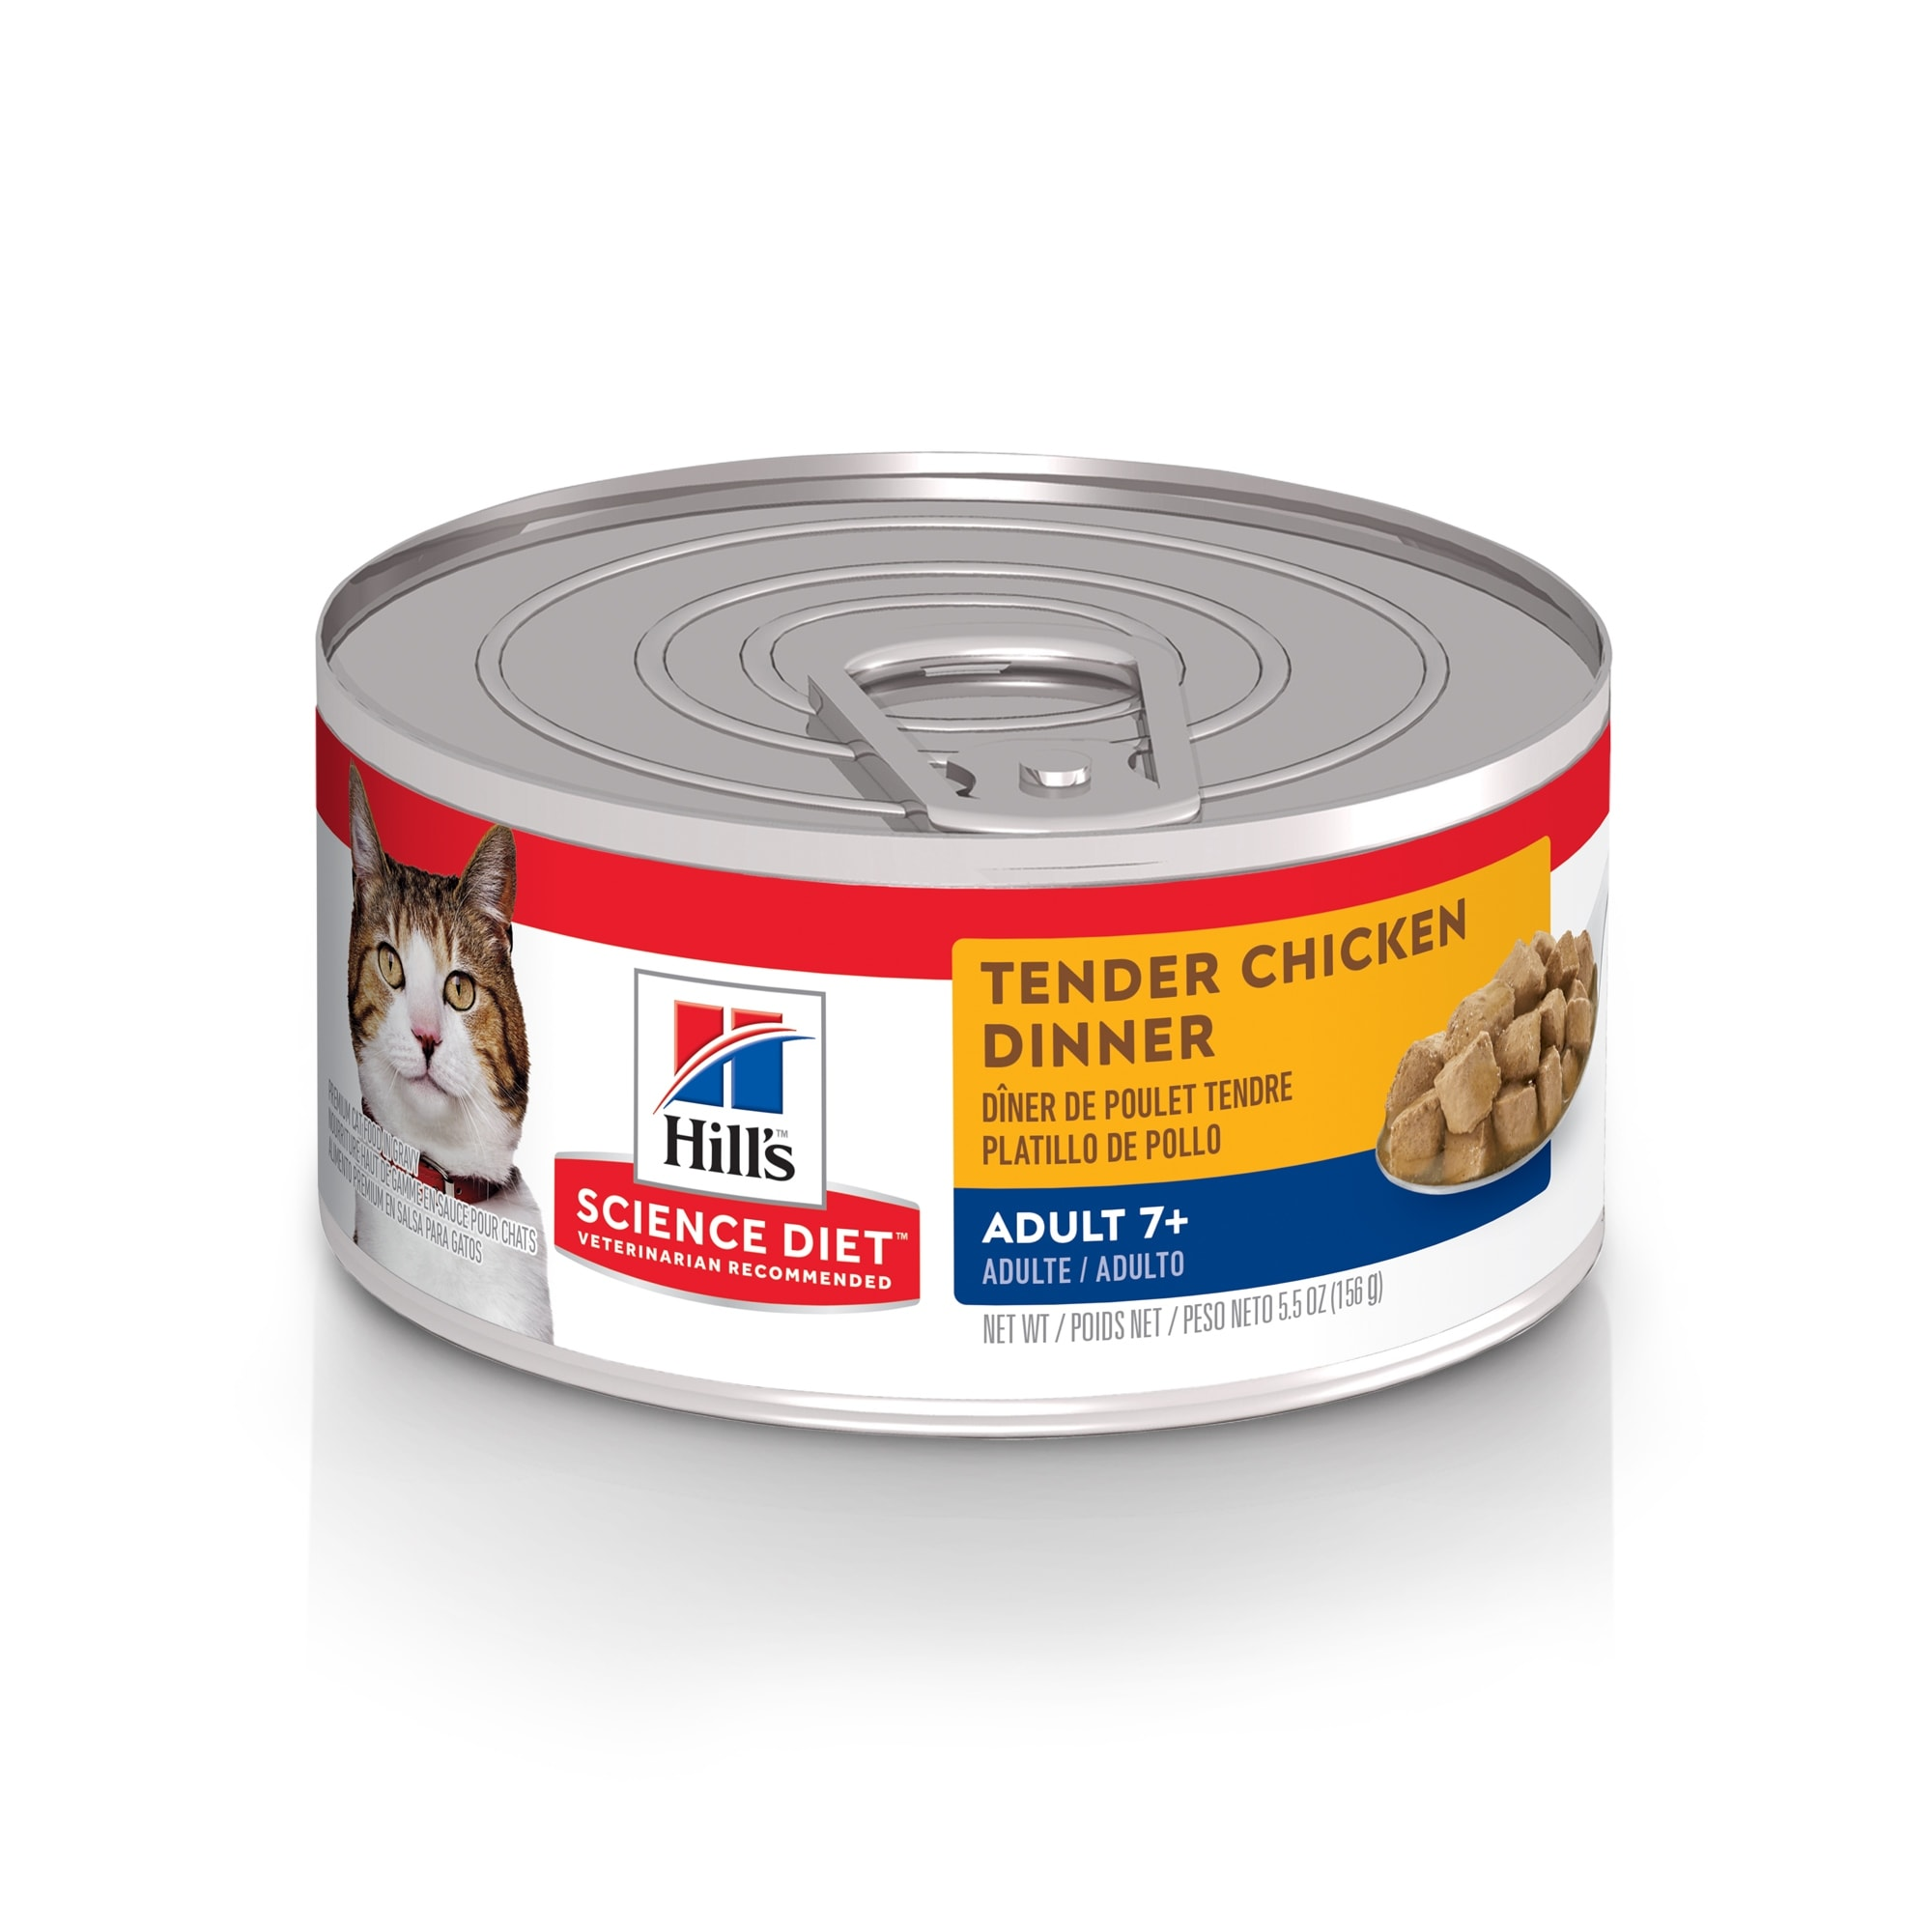 Hill's Science Diet Adult 7+ Tender Chicken Dinner Canned Cat Food, 5.5 oz., Case of 24